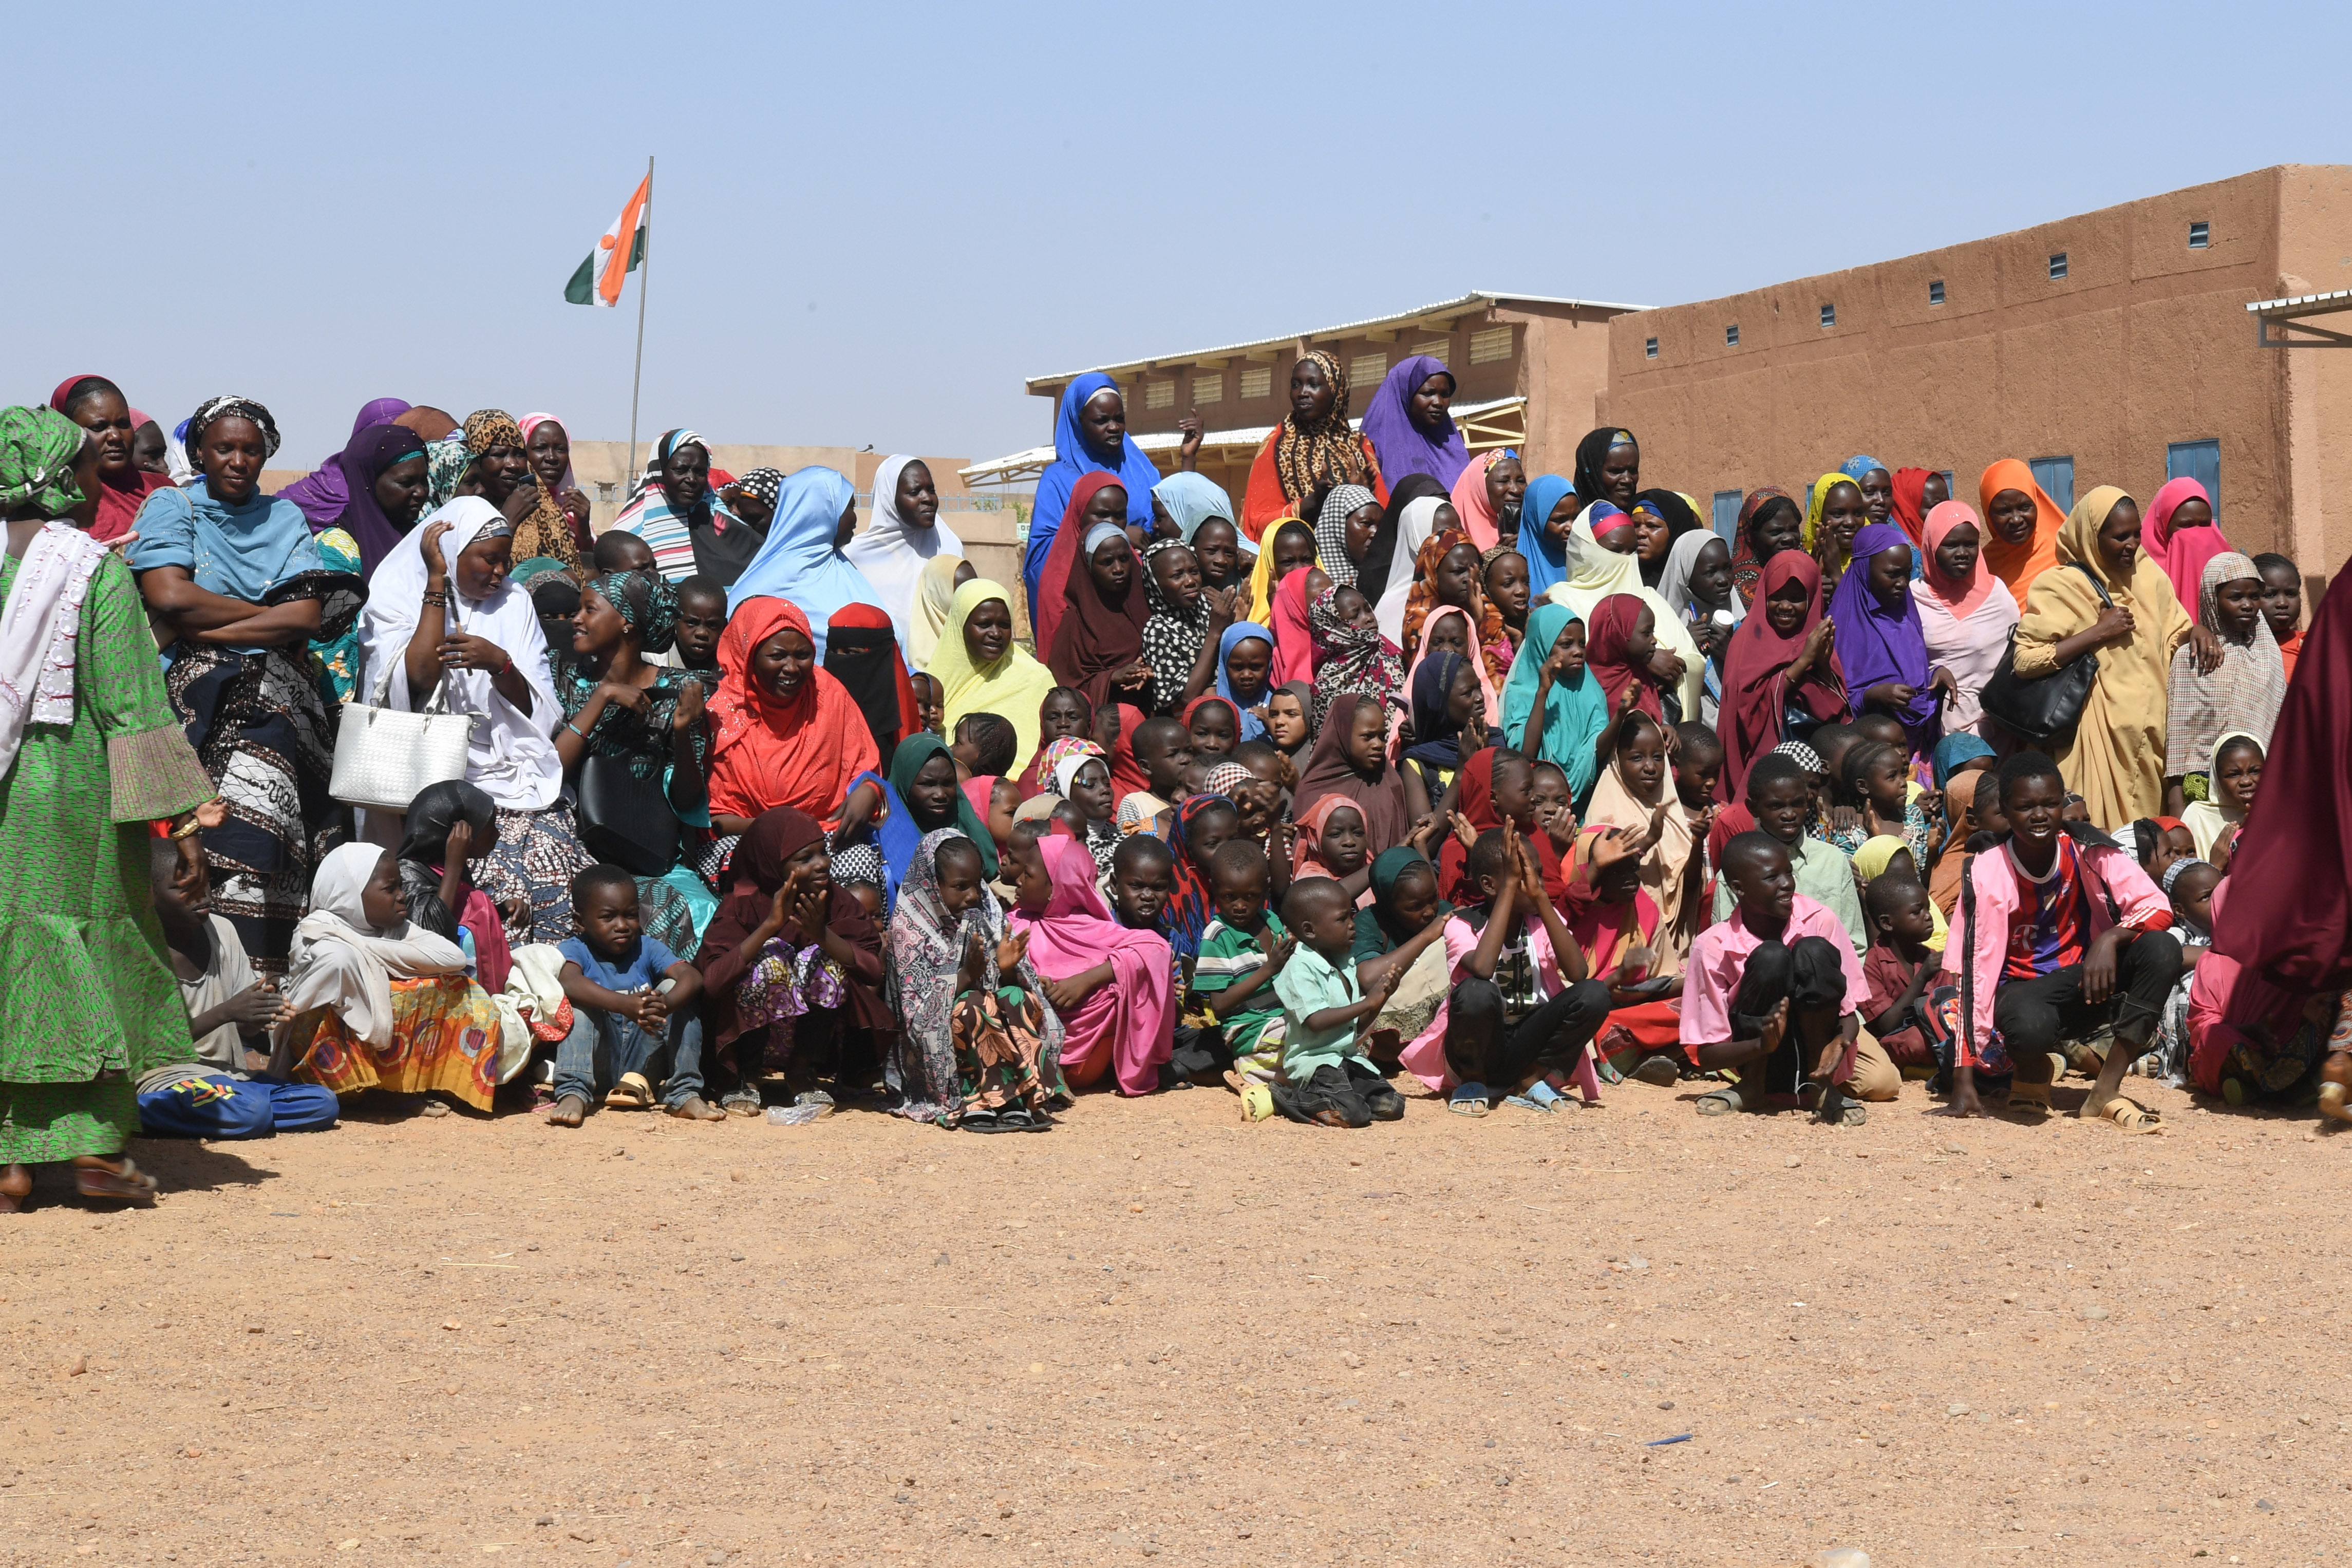 Teachers and students attend the ceremony in which 300 desks were donated to Misrata Primary School in Agadez, Niger, Oct. 23, 2018. Approximately 1,000 desks will be donated to schools in the local area along with school supplies collected by U.S. military members at Nigerien Air Base 201. (U.S. Air Force photo by Tech. Sgt. Rachelle Coleman)